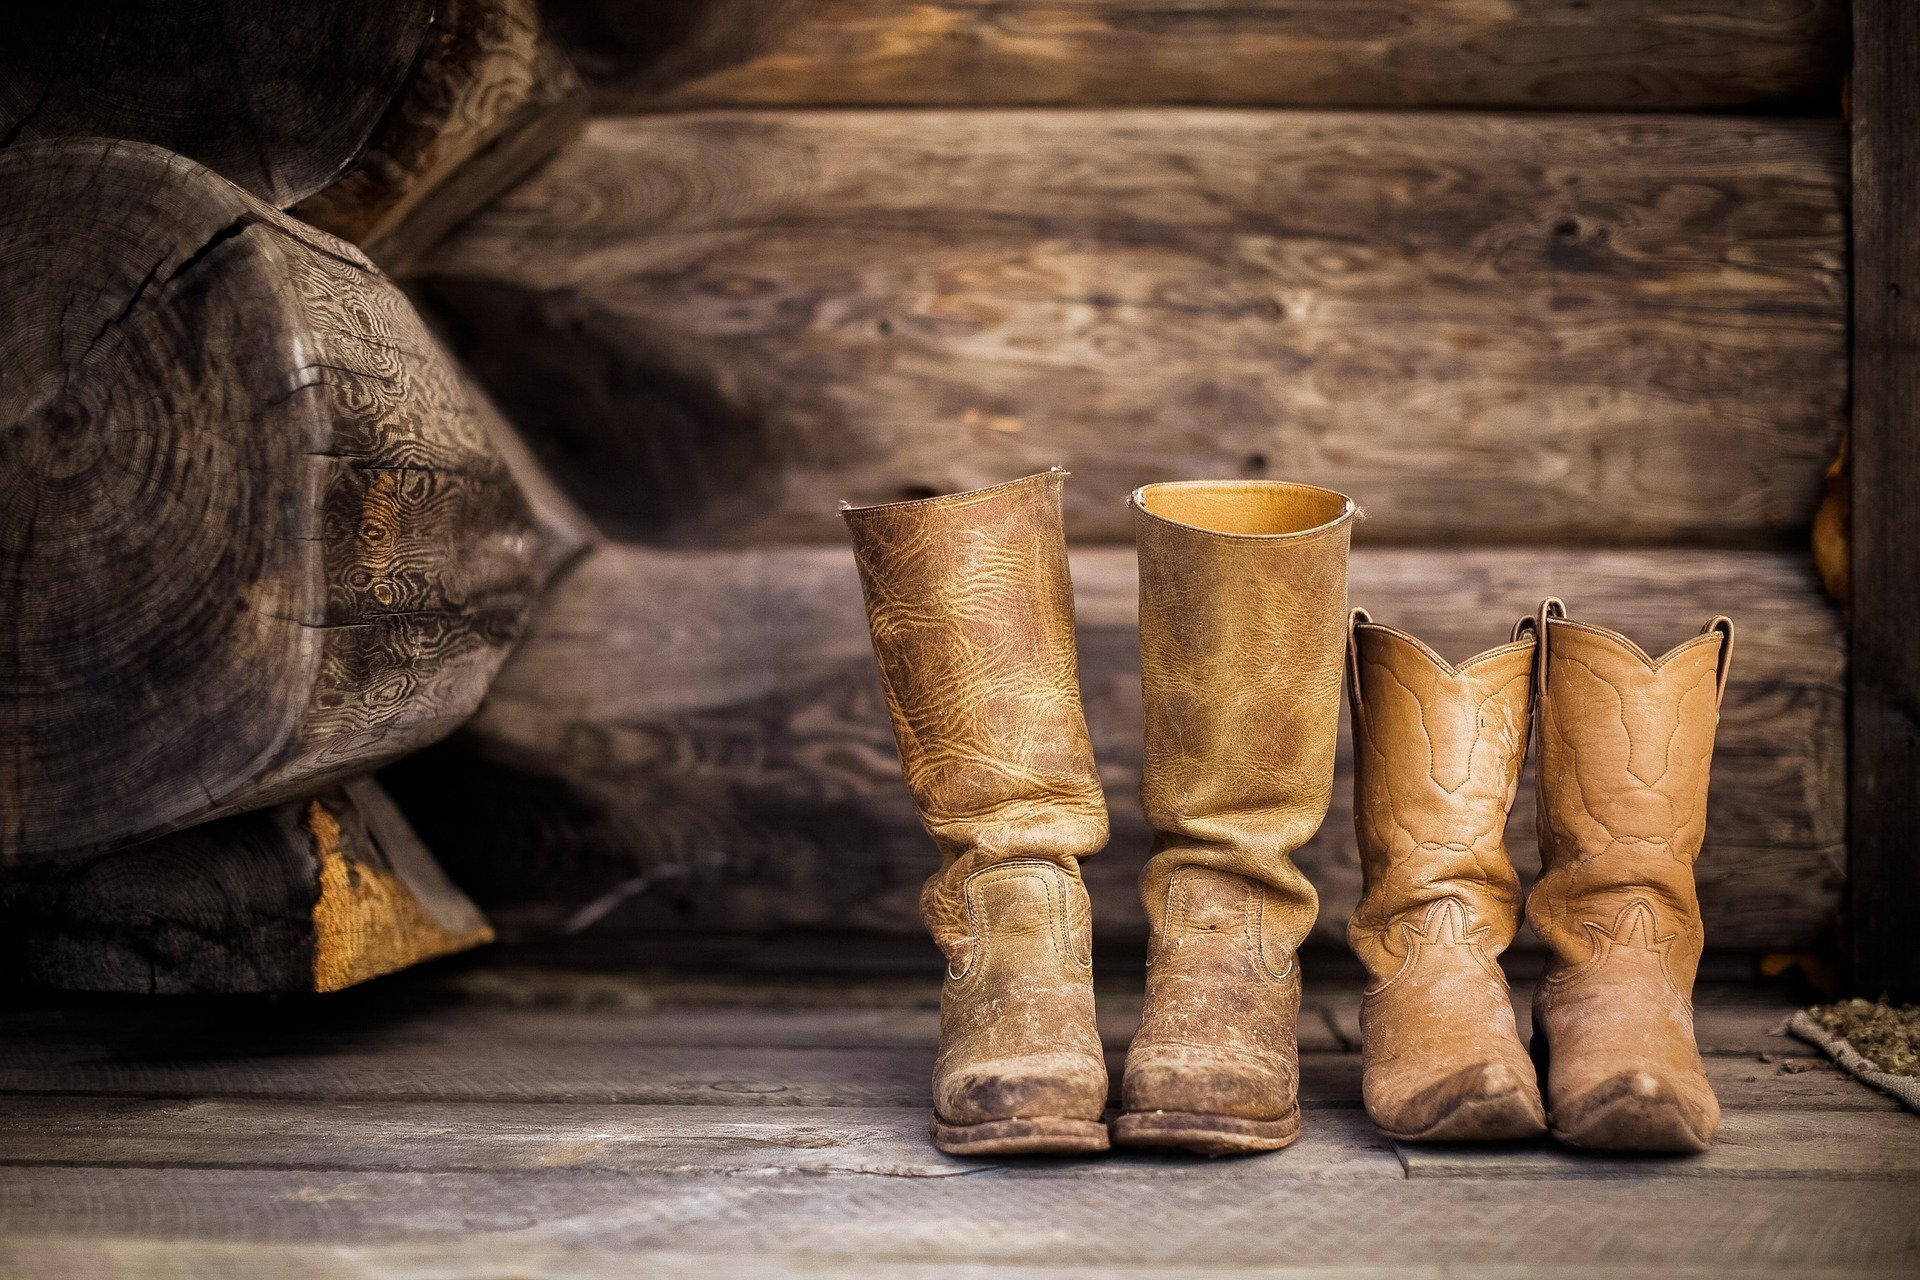 boots-1853964_1920